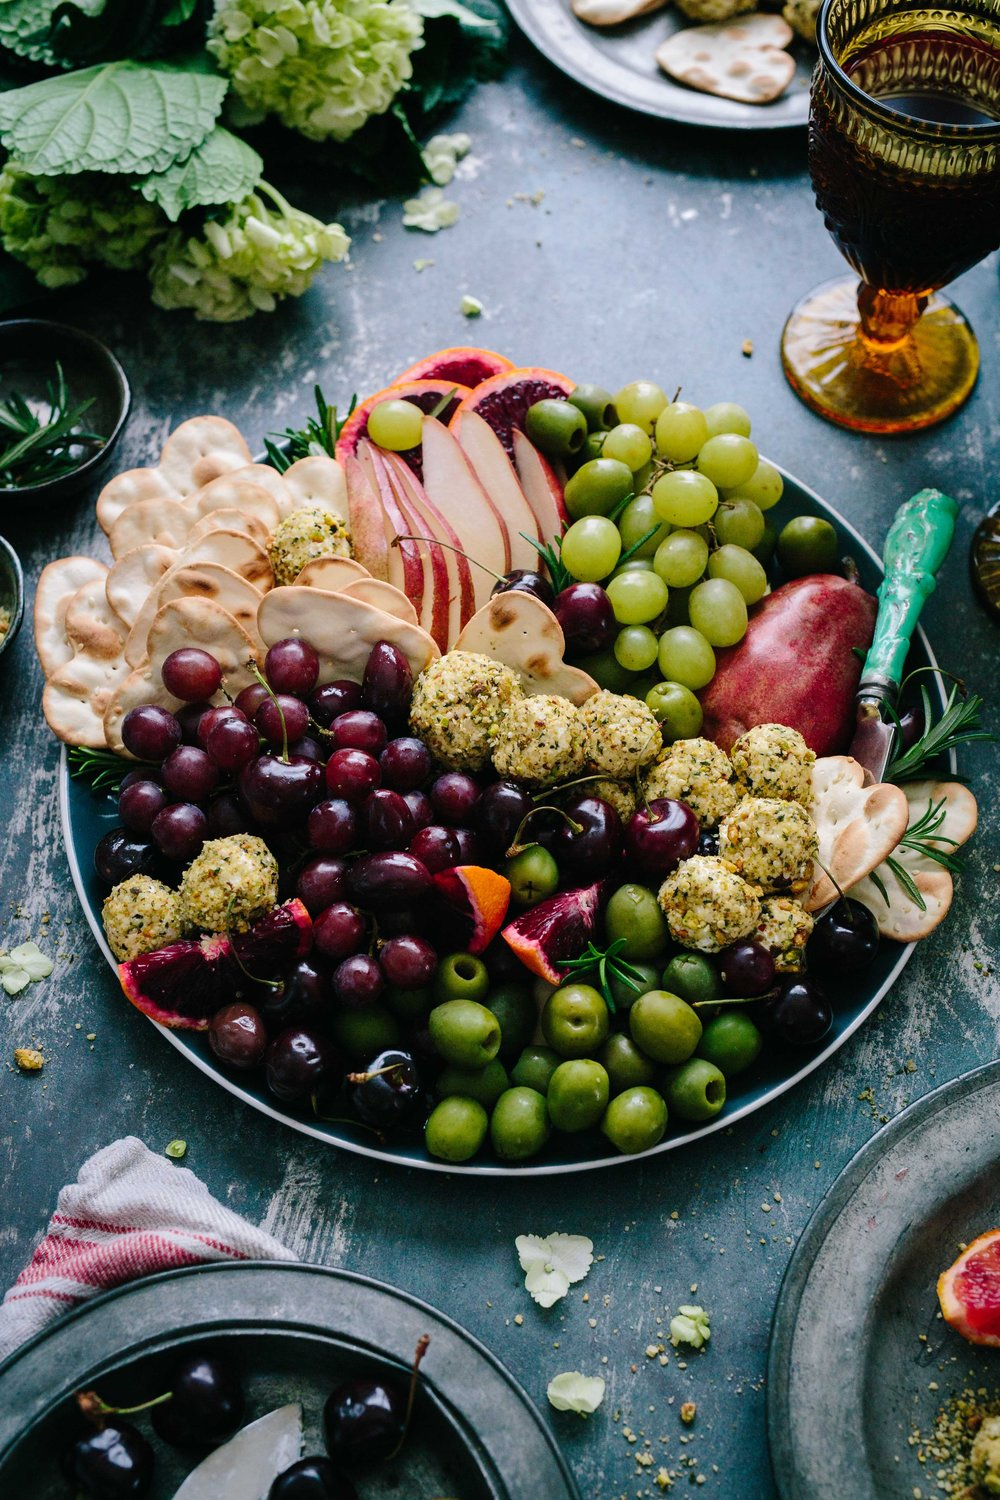 A plate filled with luscious-looking grapes, olives, cheese, and crackers.